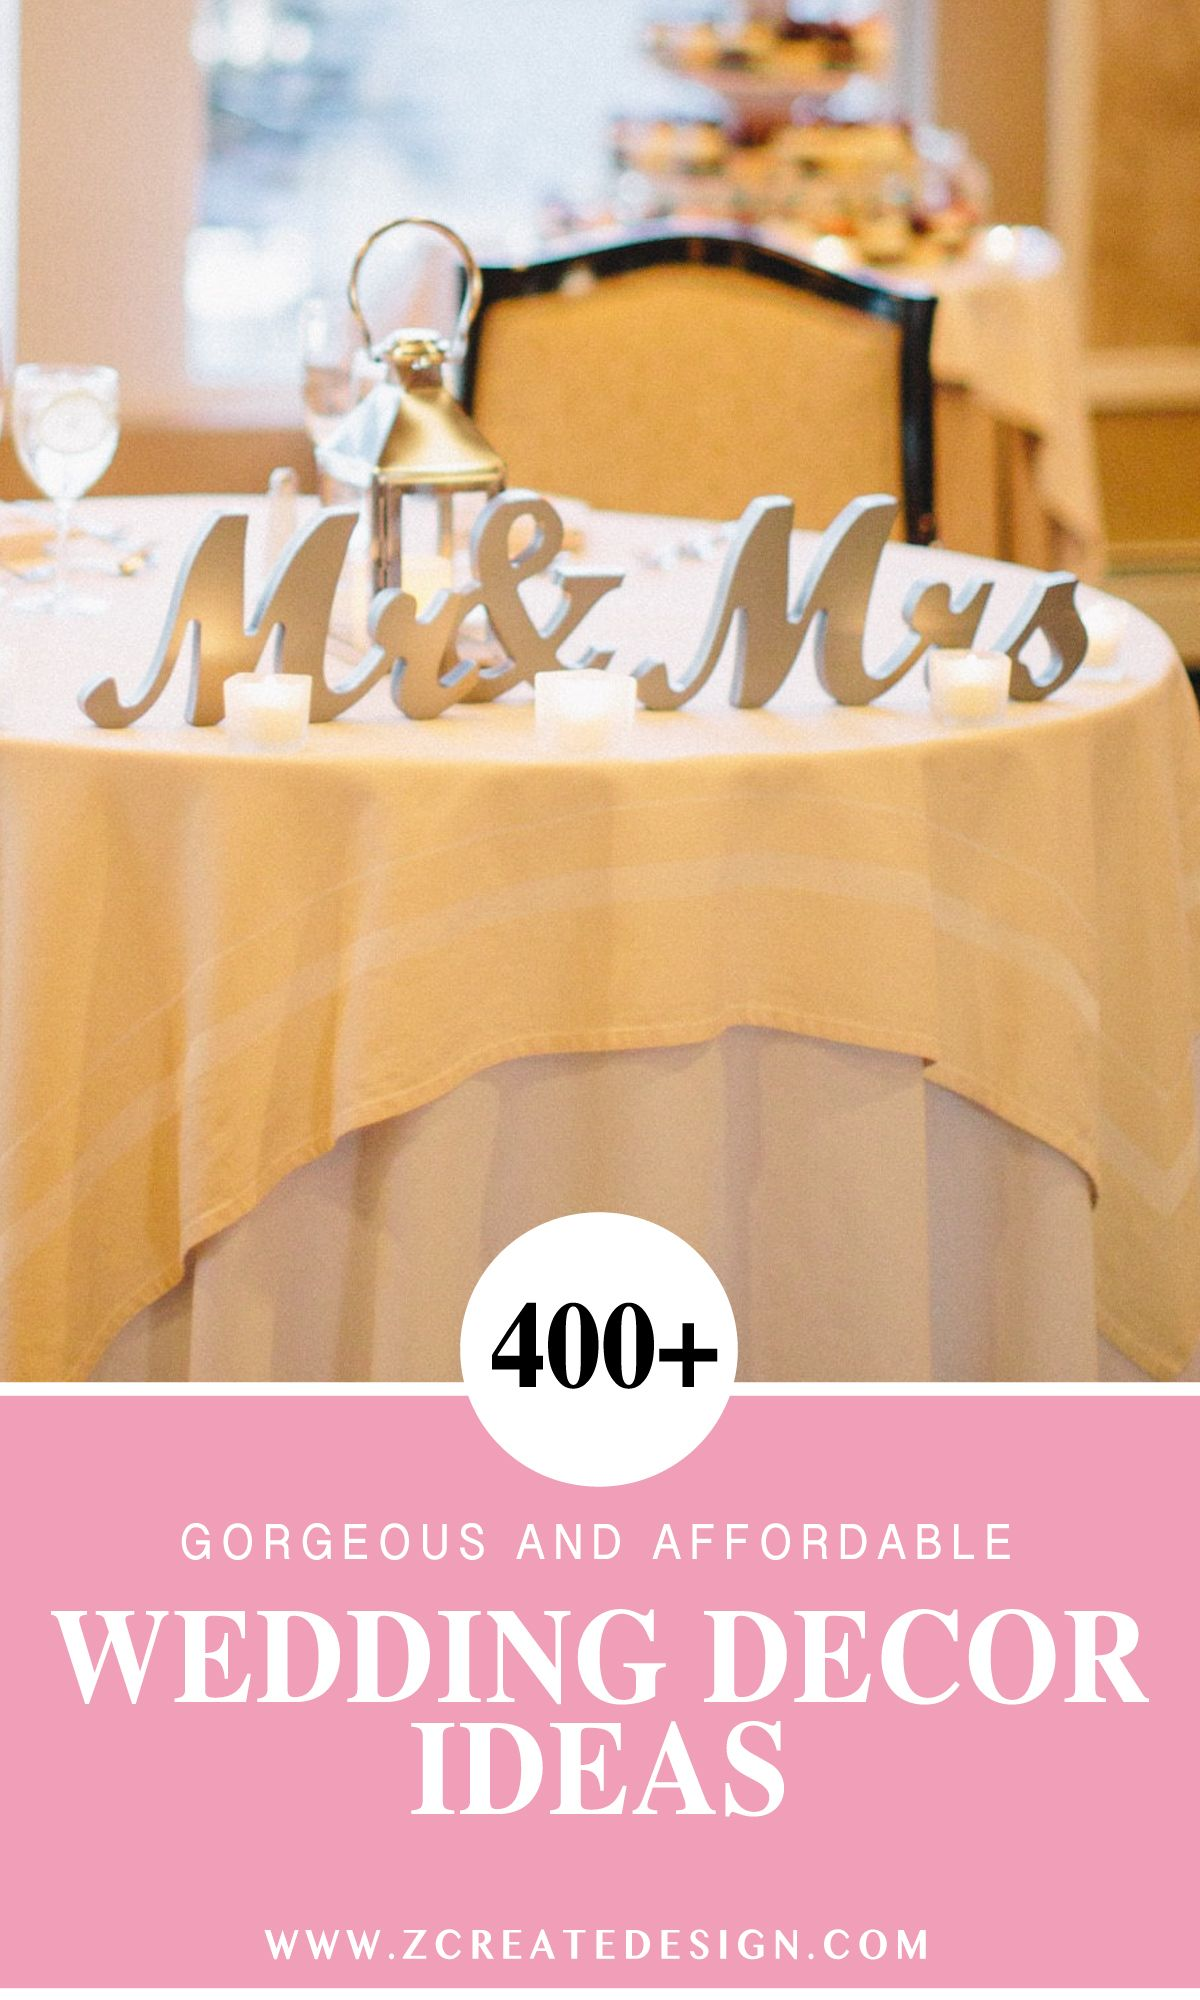 Over 500 Ideas for Your Wedding Day Decor ~ Custom Sweetheart Table Signs, Personalized Gifts, so many things to choose from! | Handmade Wedding Decor & Gifts at www.ZCreateDesign.com... or shop ZCreateDesign on Etsy